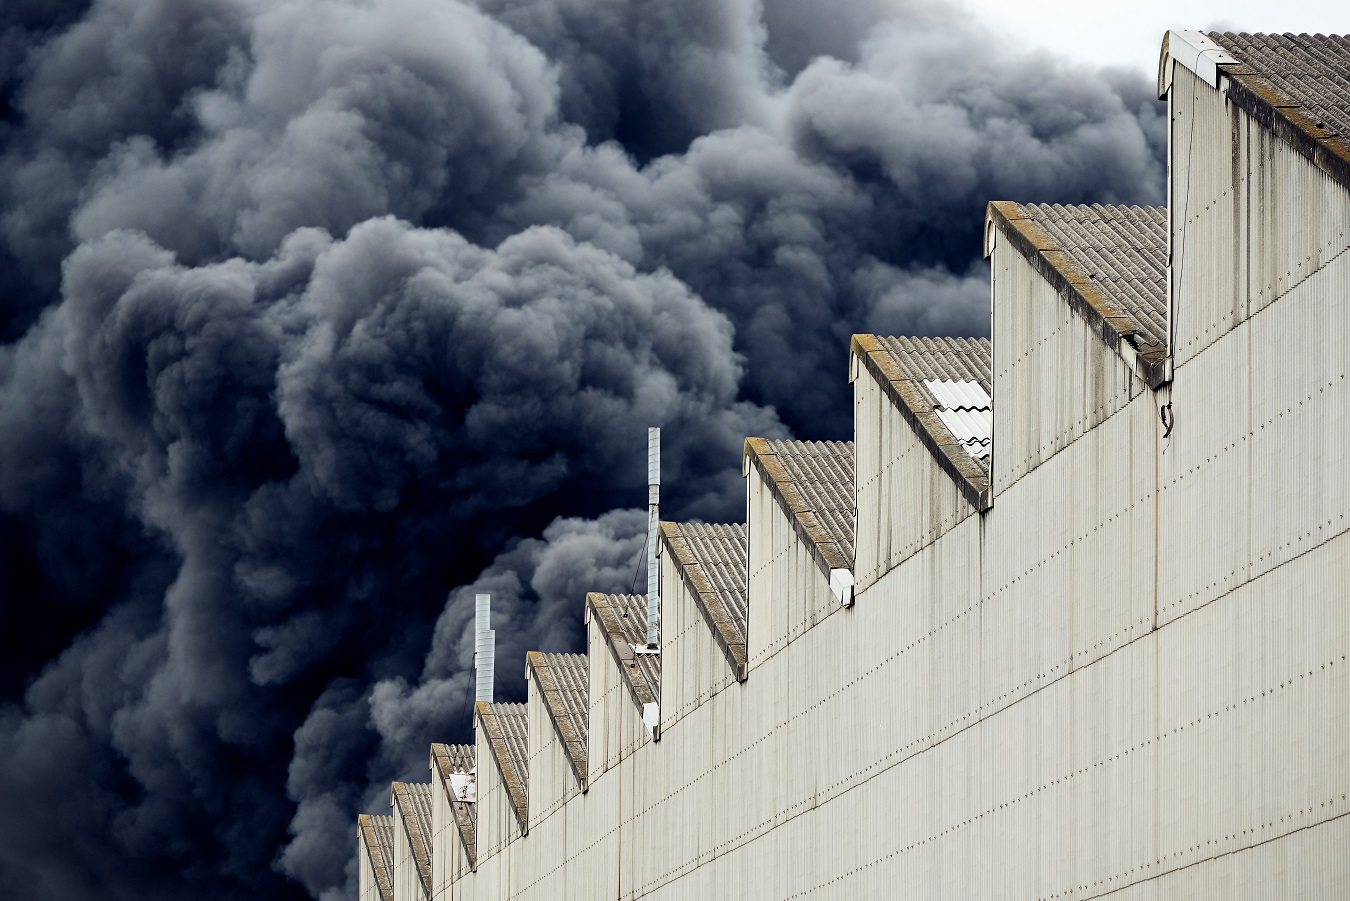 Analysis of Fires in Industrial Facilities or Manufacturing Properties